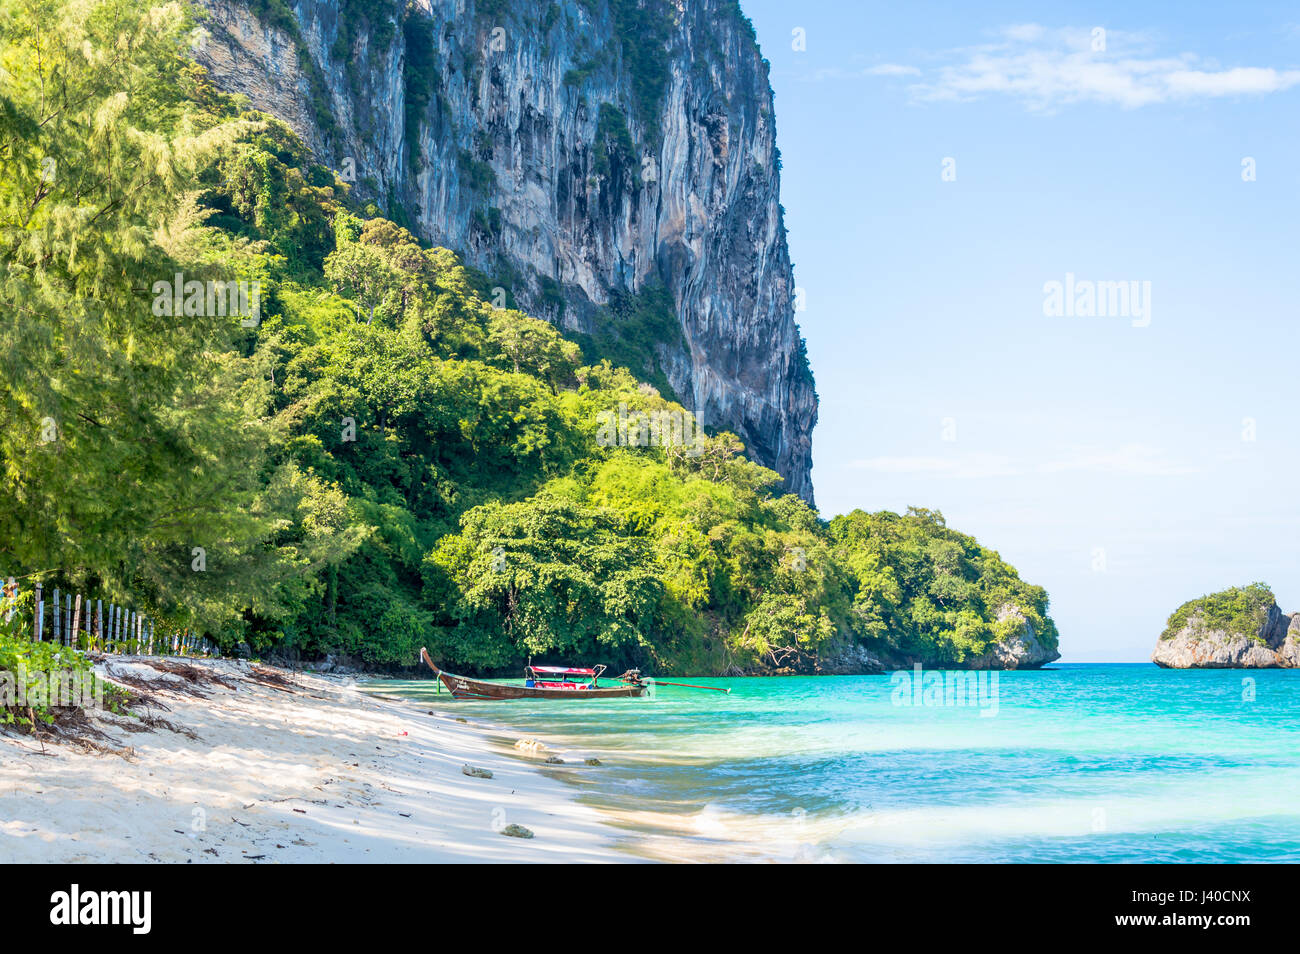 Scenics View of Island Beach Against Sky - Stock Image